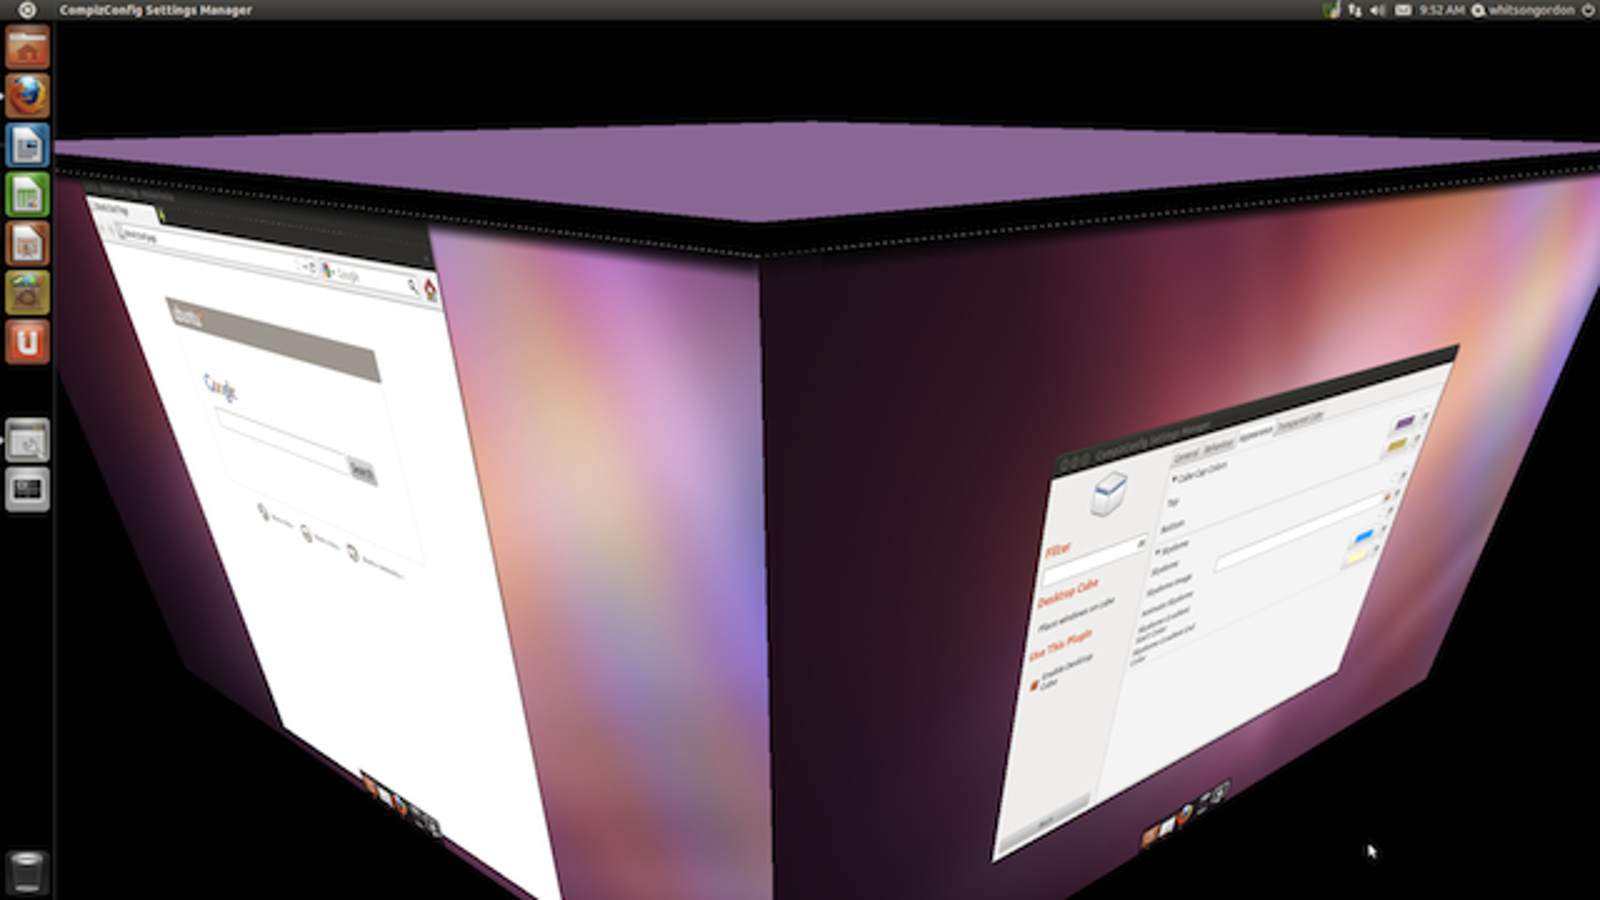 How Do I Get Cool Desktop Effects in Linux?